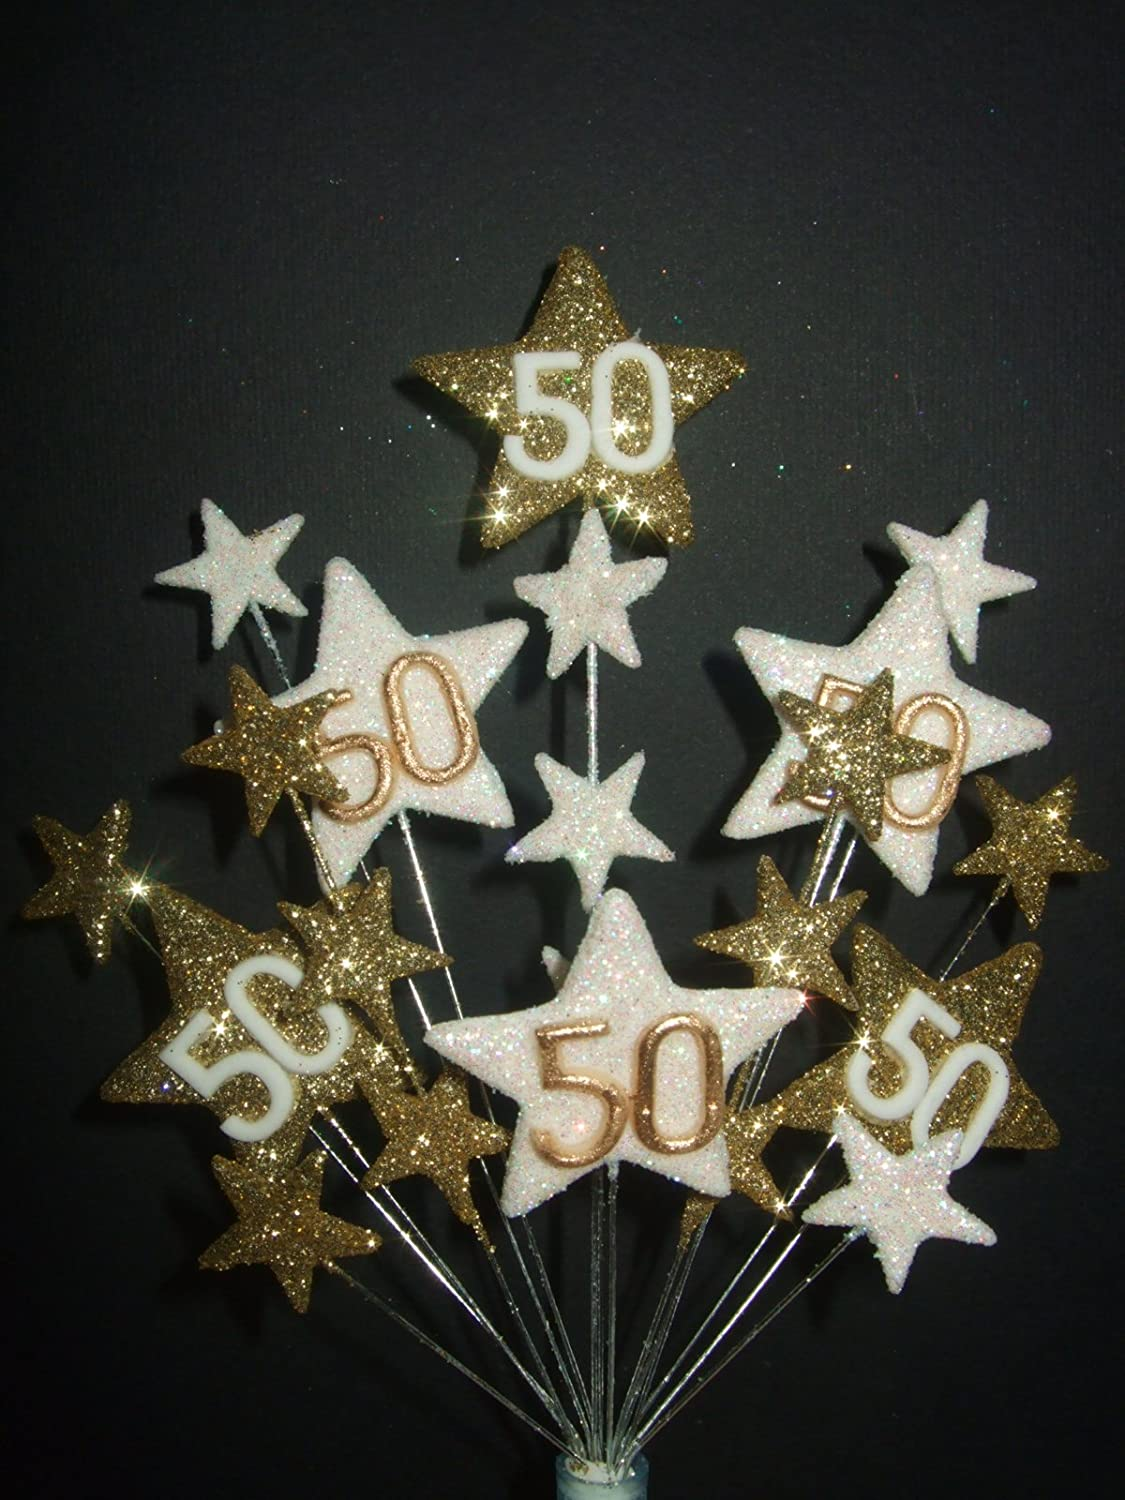 STAR AGE 50TH BIRTHDAY CAKE TOPPER IN GOLD AND WHITE Amazoncouk